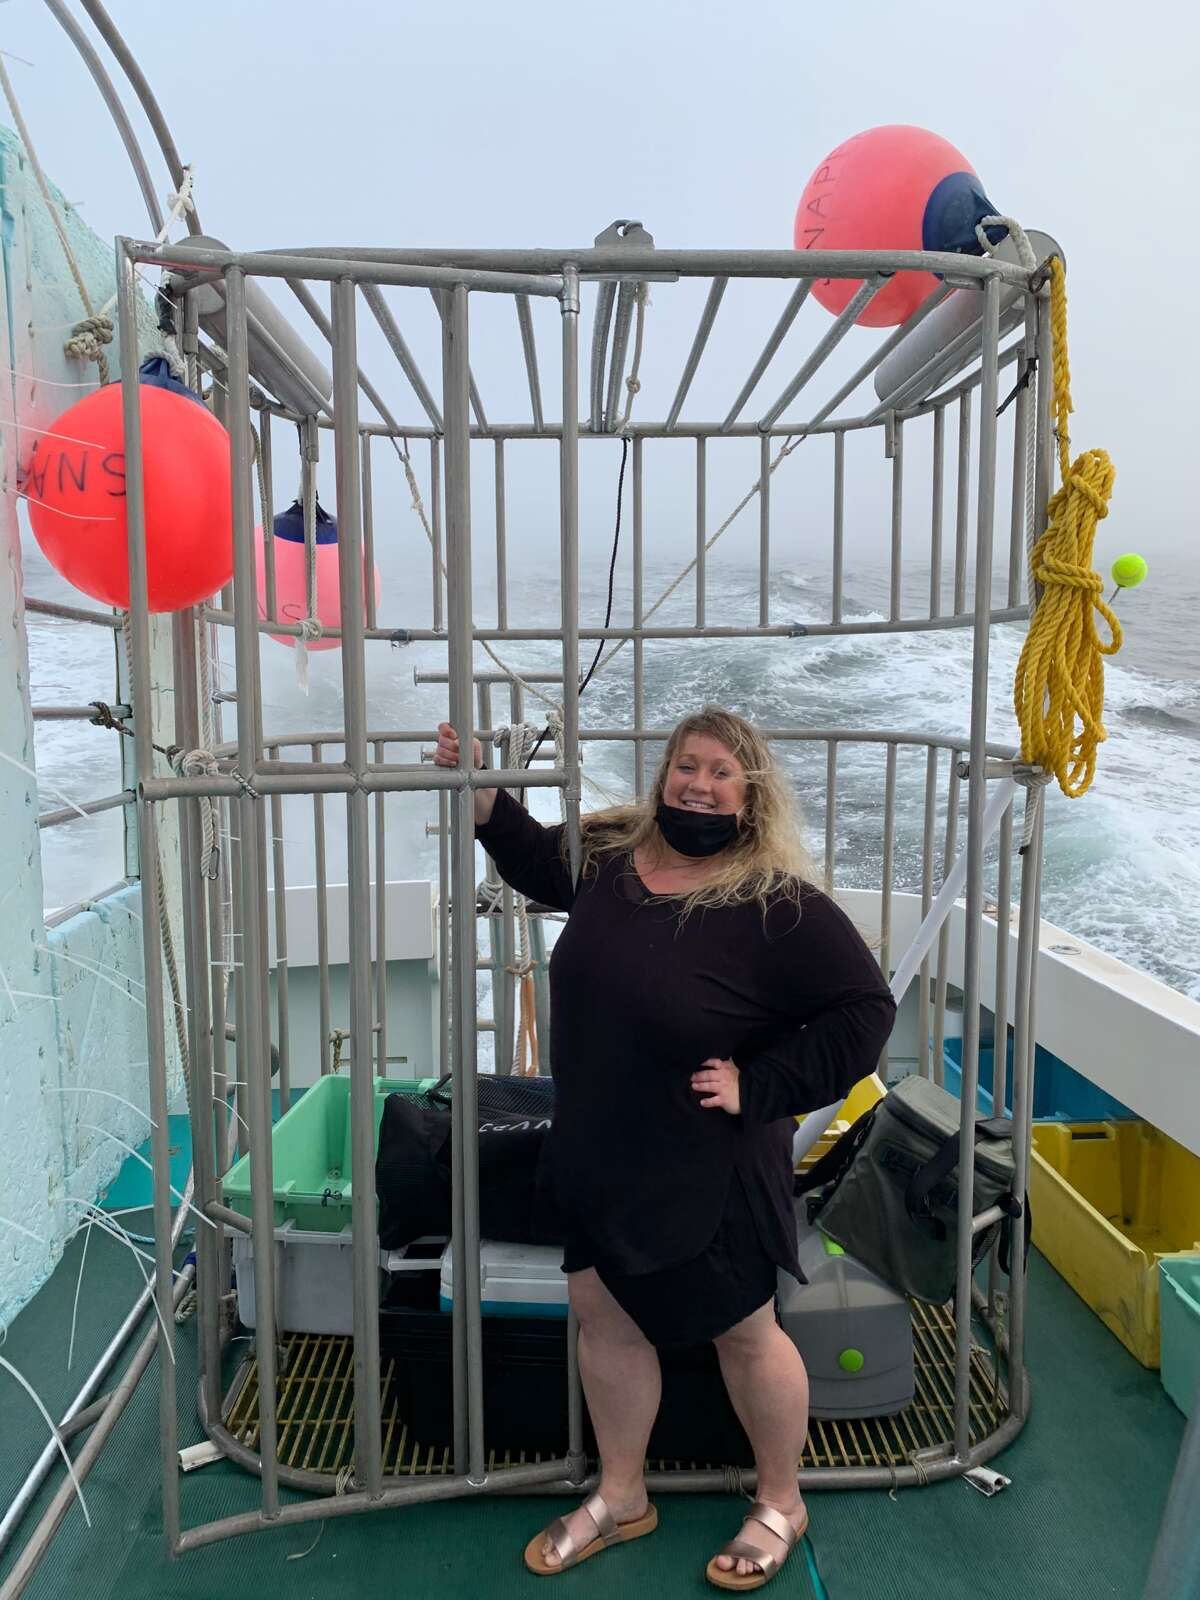 Writer Jessica Kelly on one of her solo trips, this time going diving for sharks in Newport, Rhode Island.